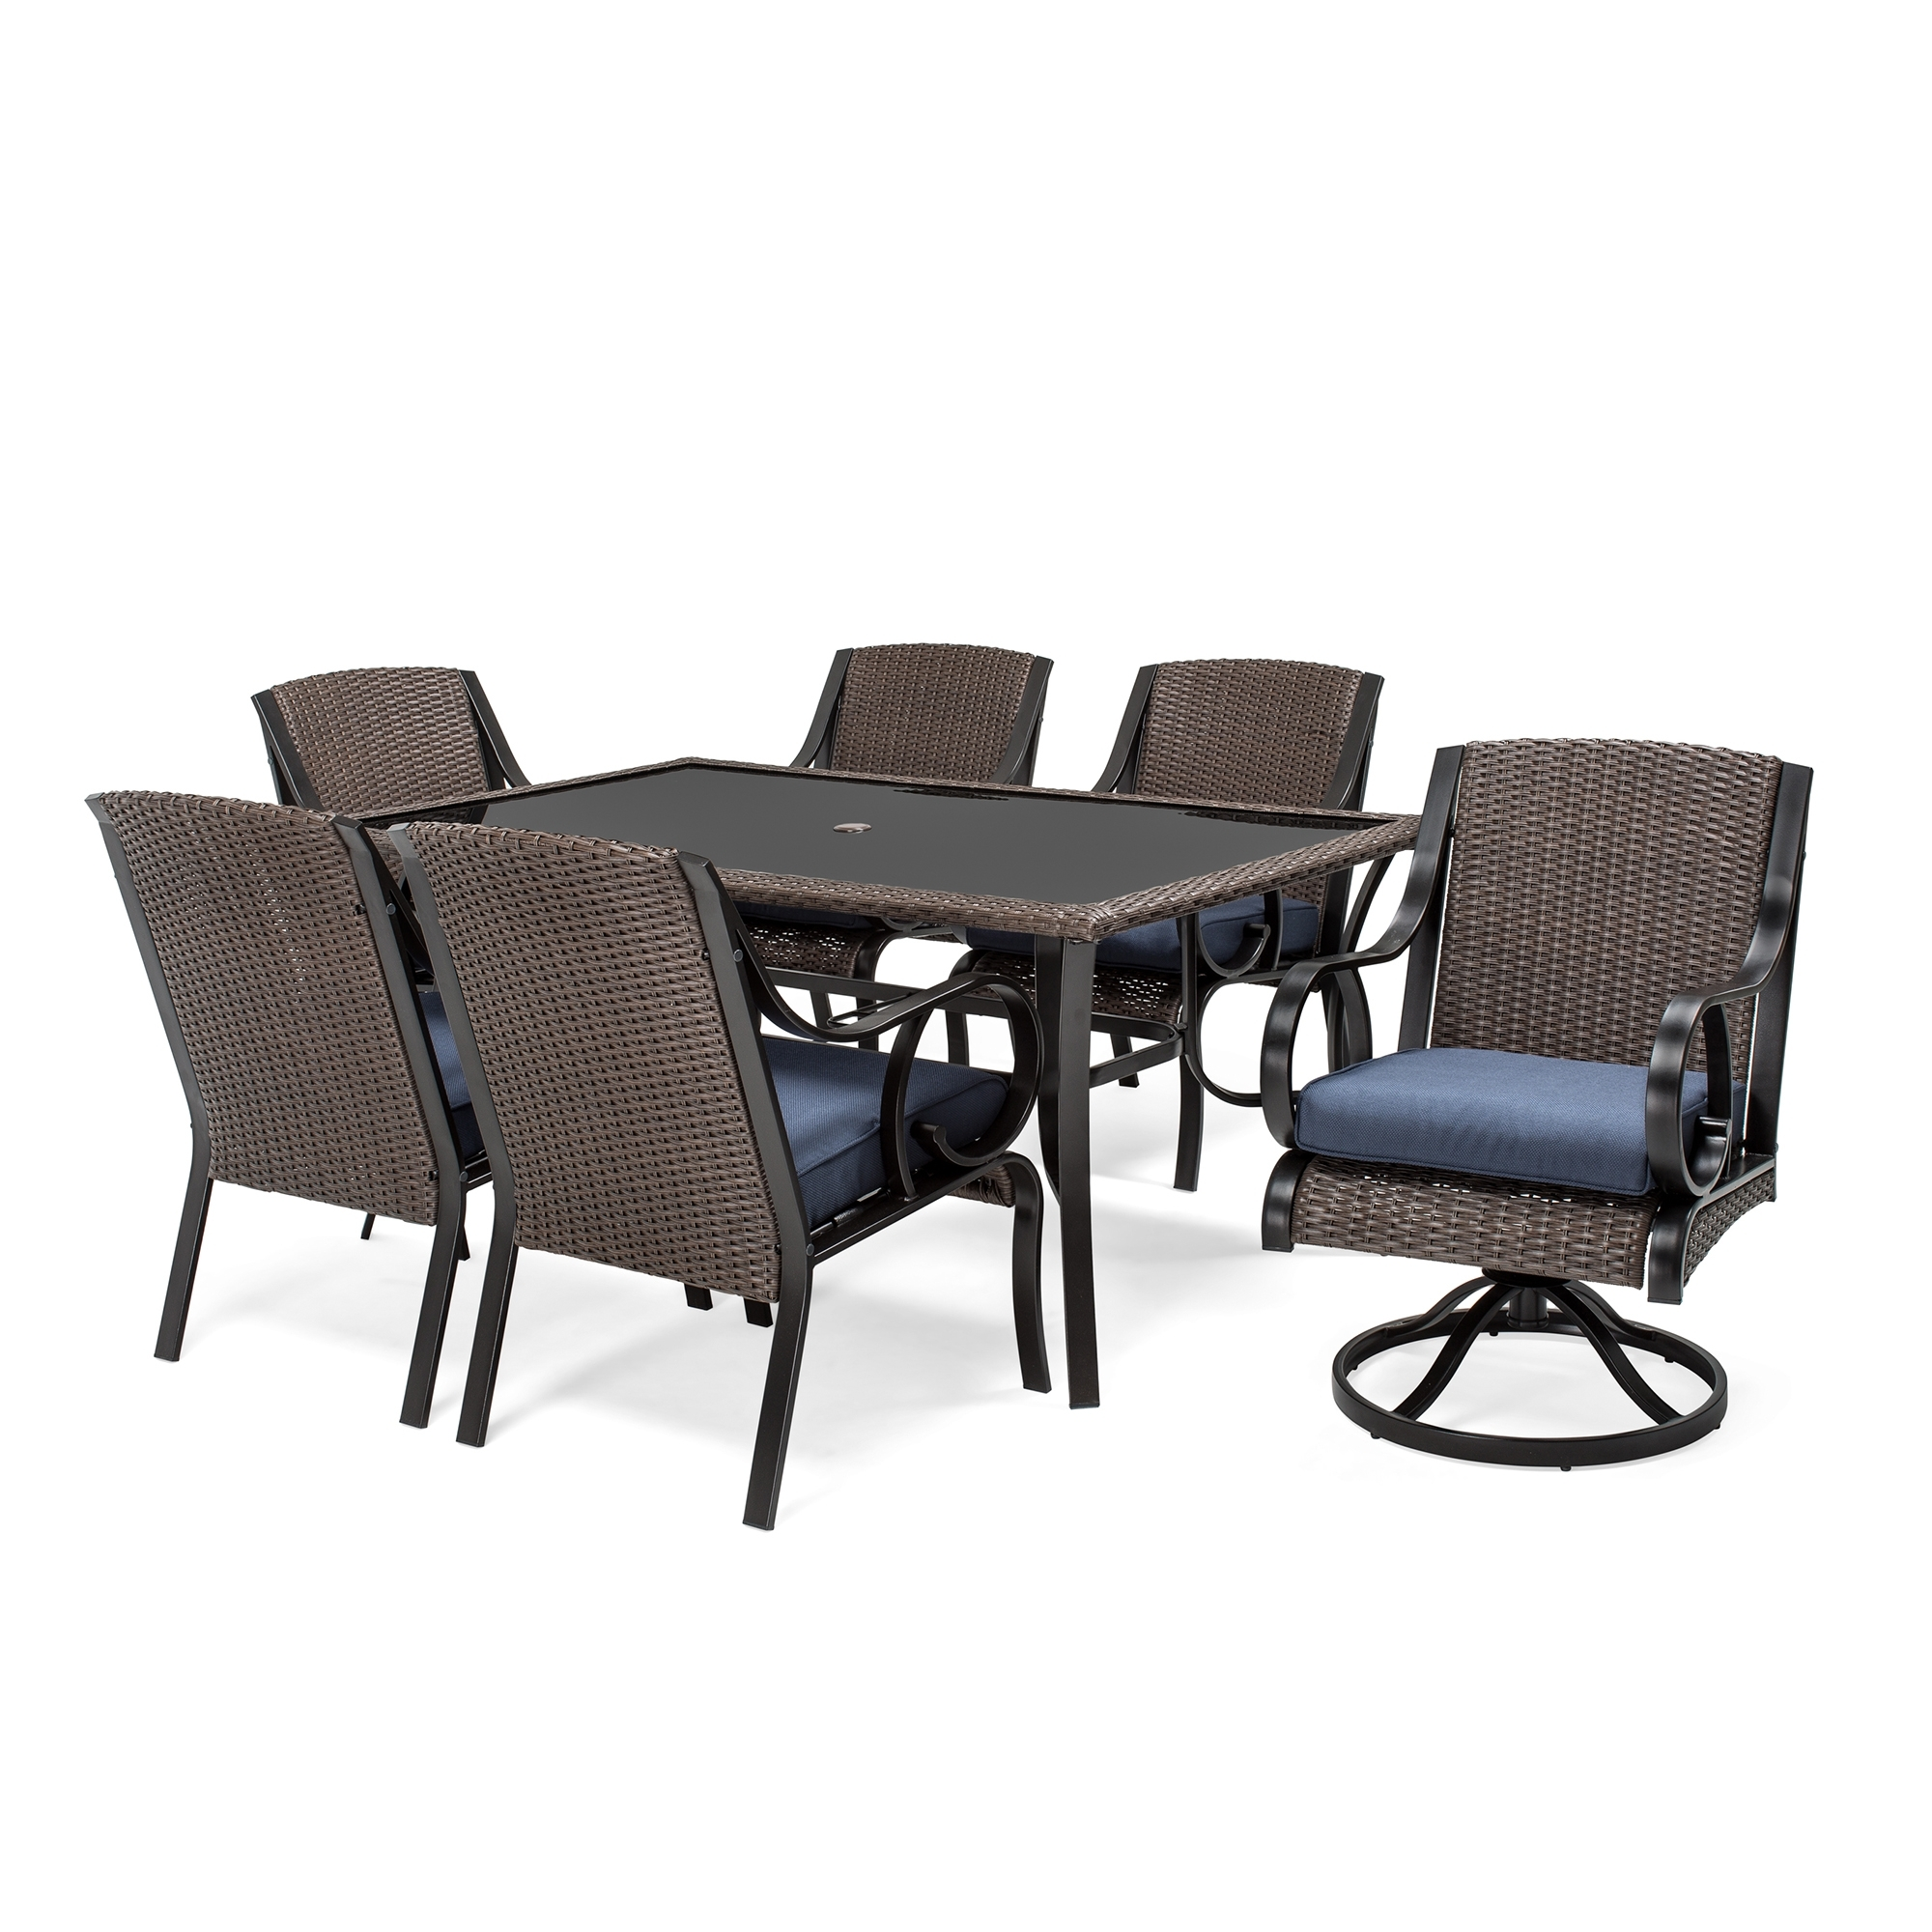 Well Known Lazy Boy Patio Conversation Sets Intended For Patio : Lazy Boy Coffee Tables Design Ideas Patio Furniture Sears (View 12 of 15)